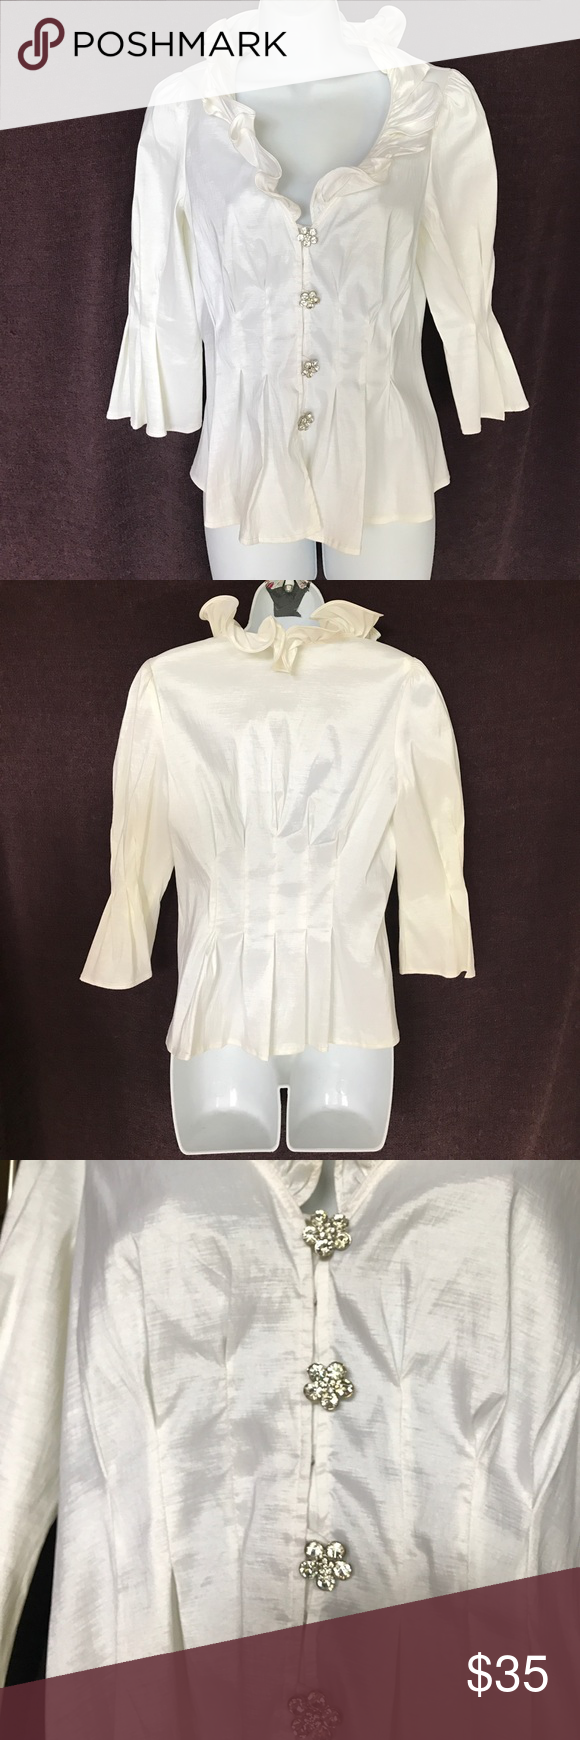 c8b28d7a6e66 Dressy Blouse Beautiful, off-white blouse, never worn, brand new condition. Chetta  B Tops Blouses